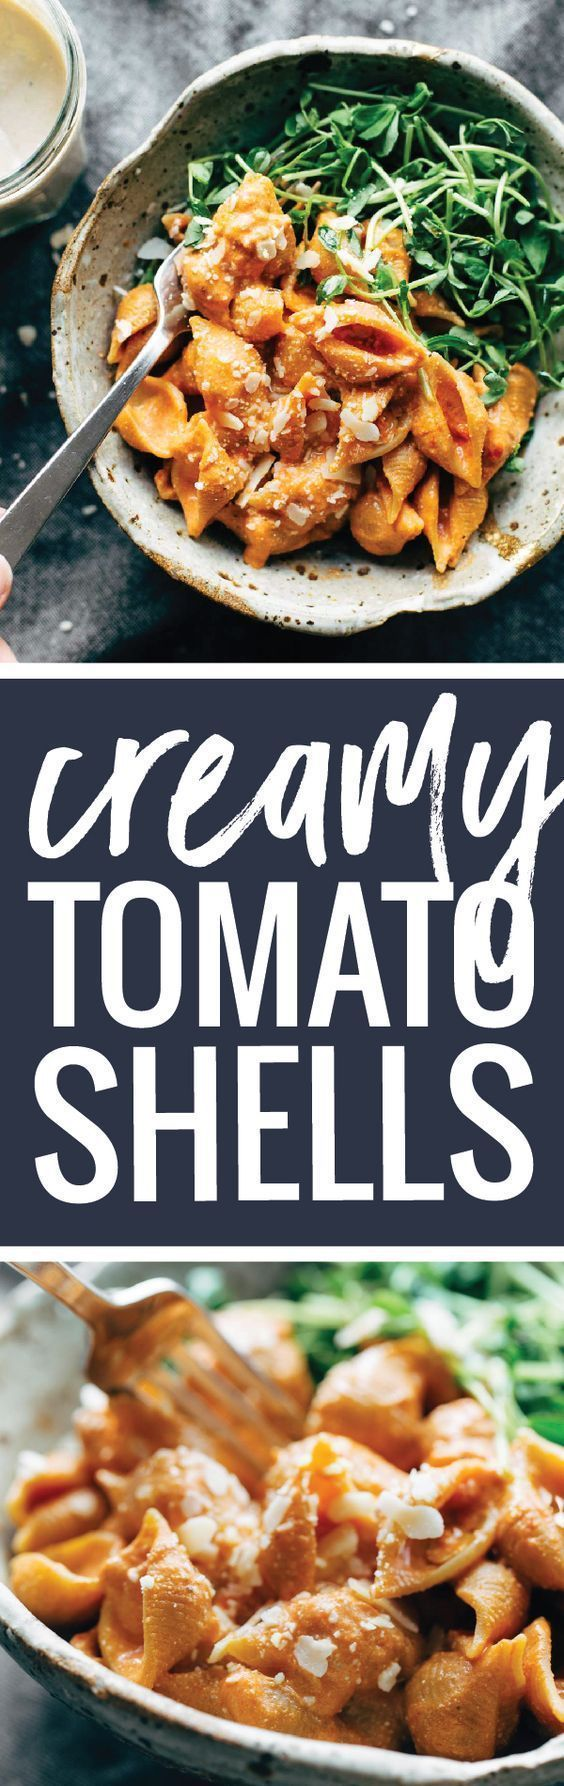 Three Ingredient Creamy Tomato Shells - this trick will make your pasta sauces creamy, velvety, and nutritious with no butter or cream! | http://pinchofyum.com